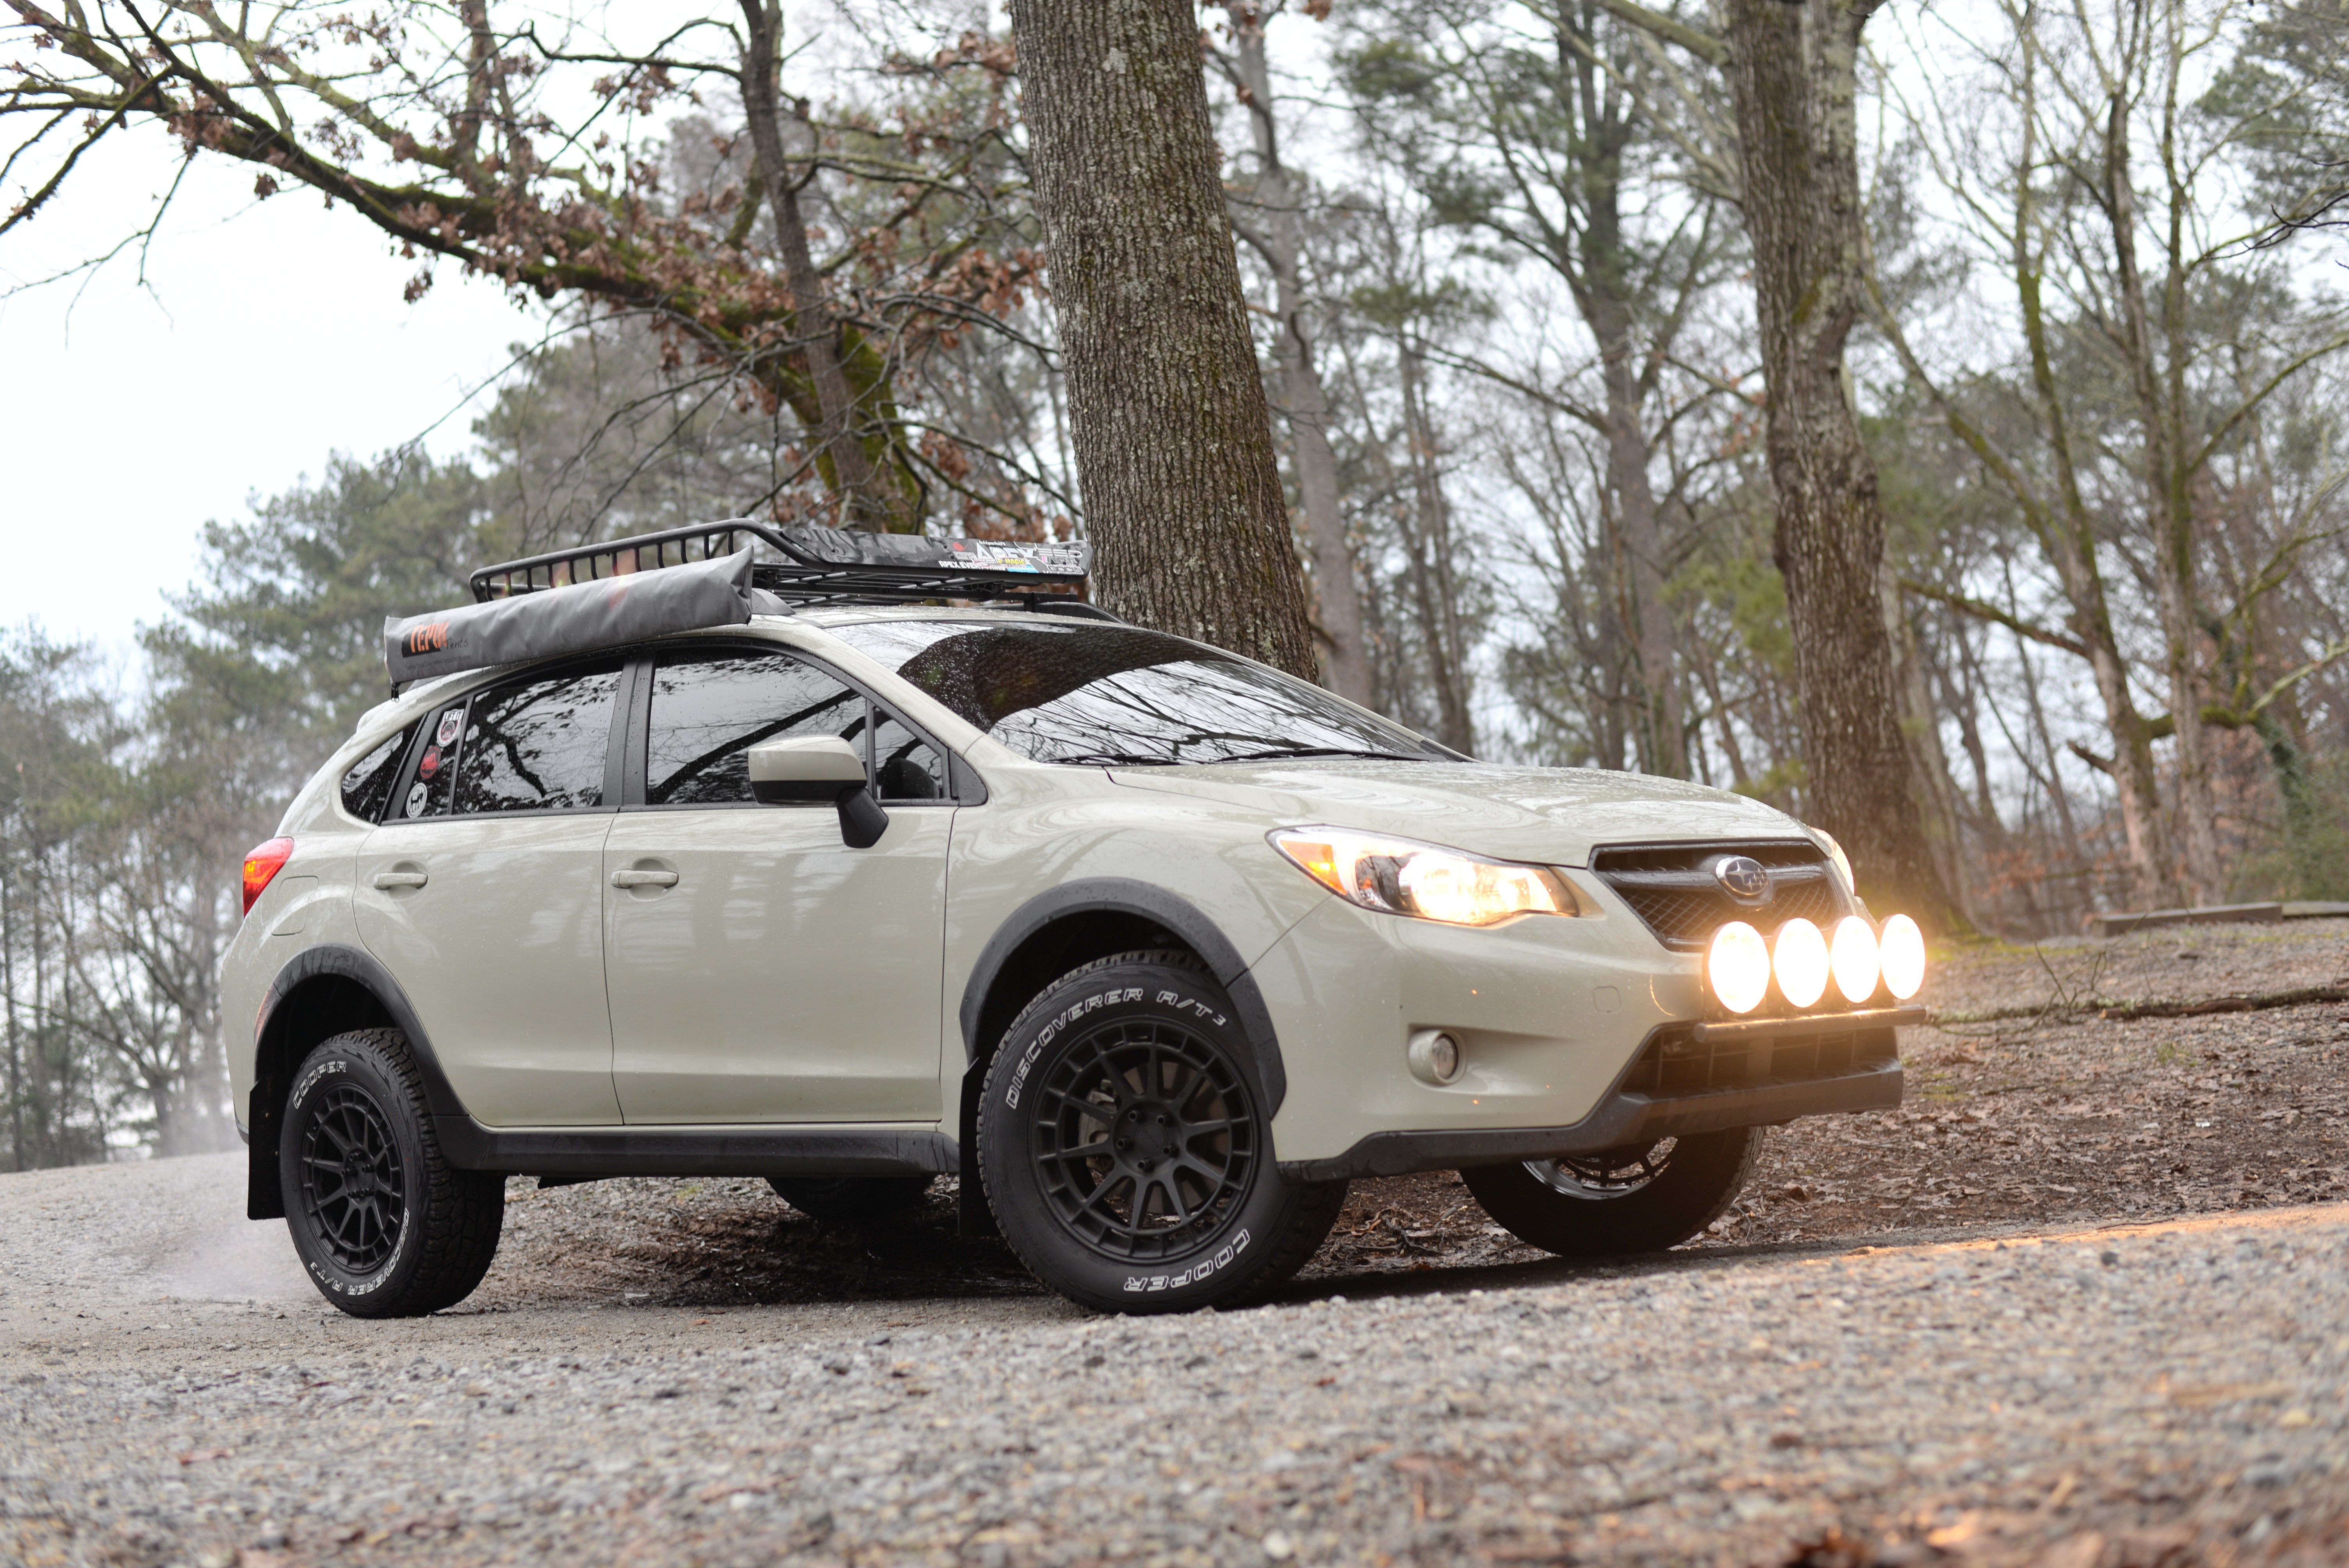 Offroad Subaru Xv Crosstrek For Our Outback Pinte